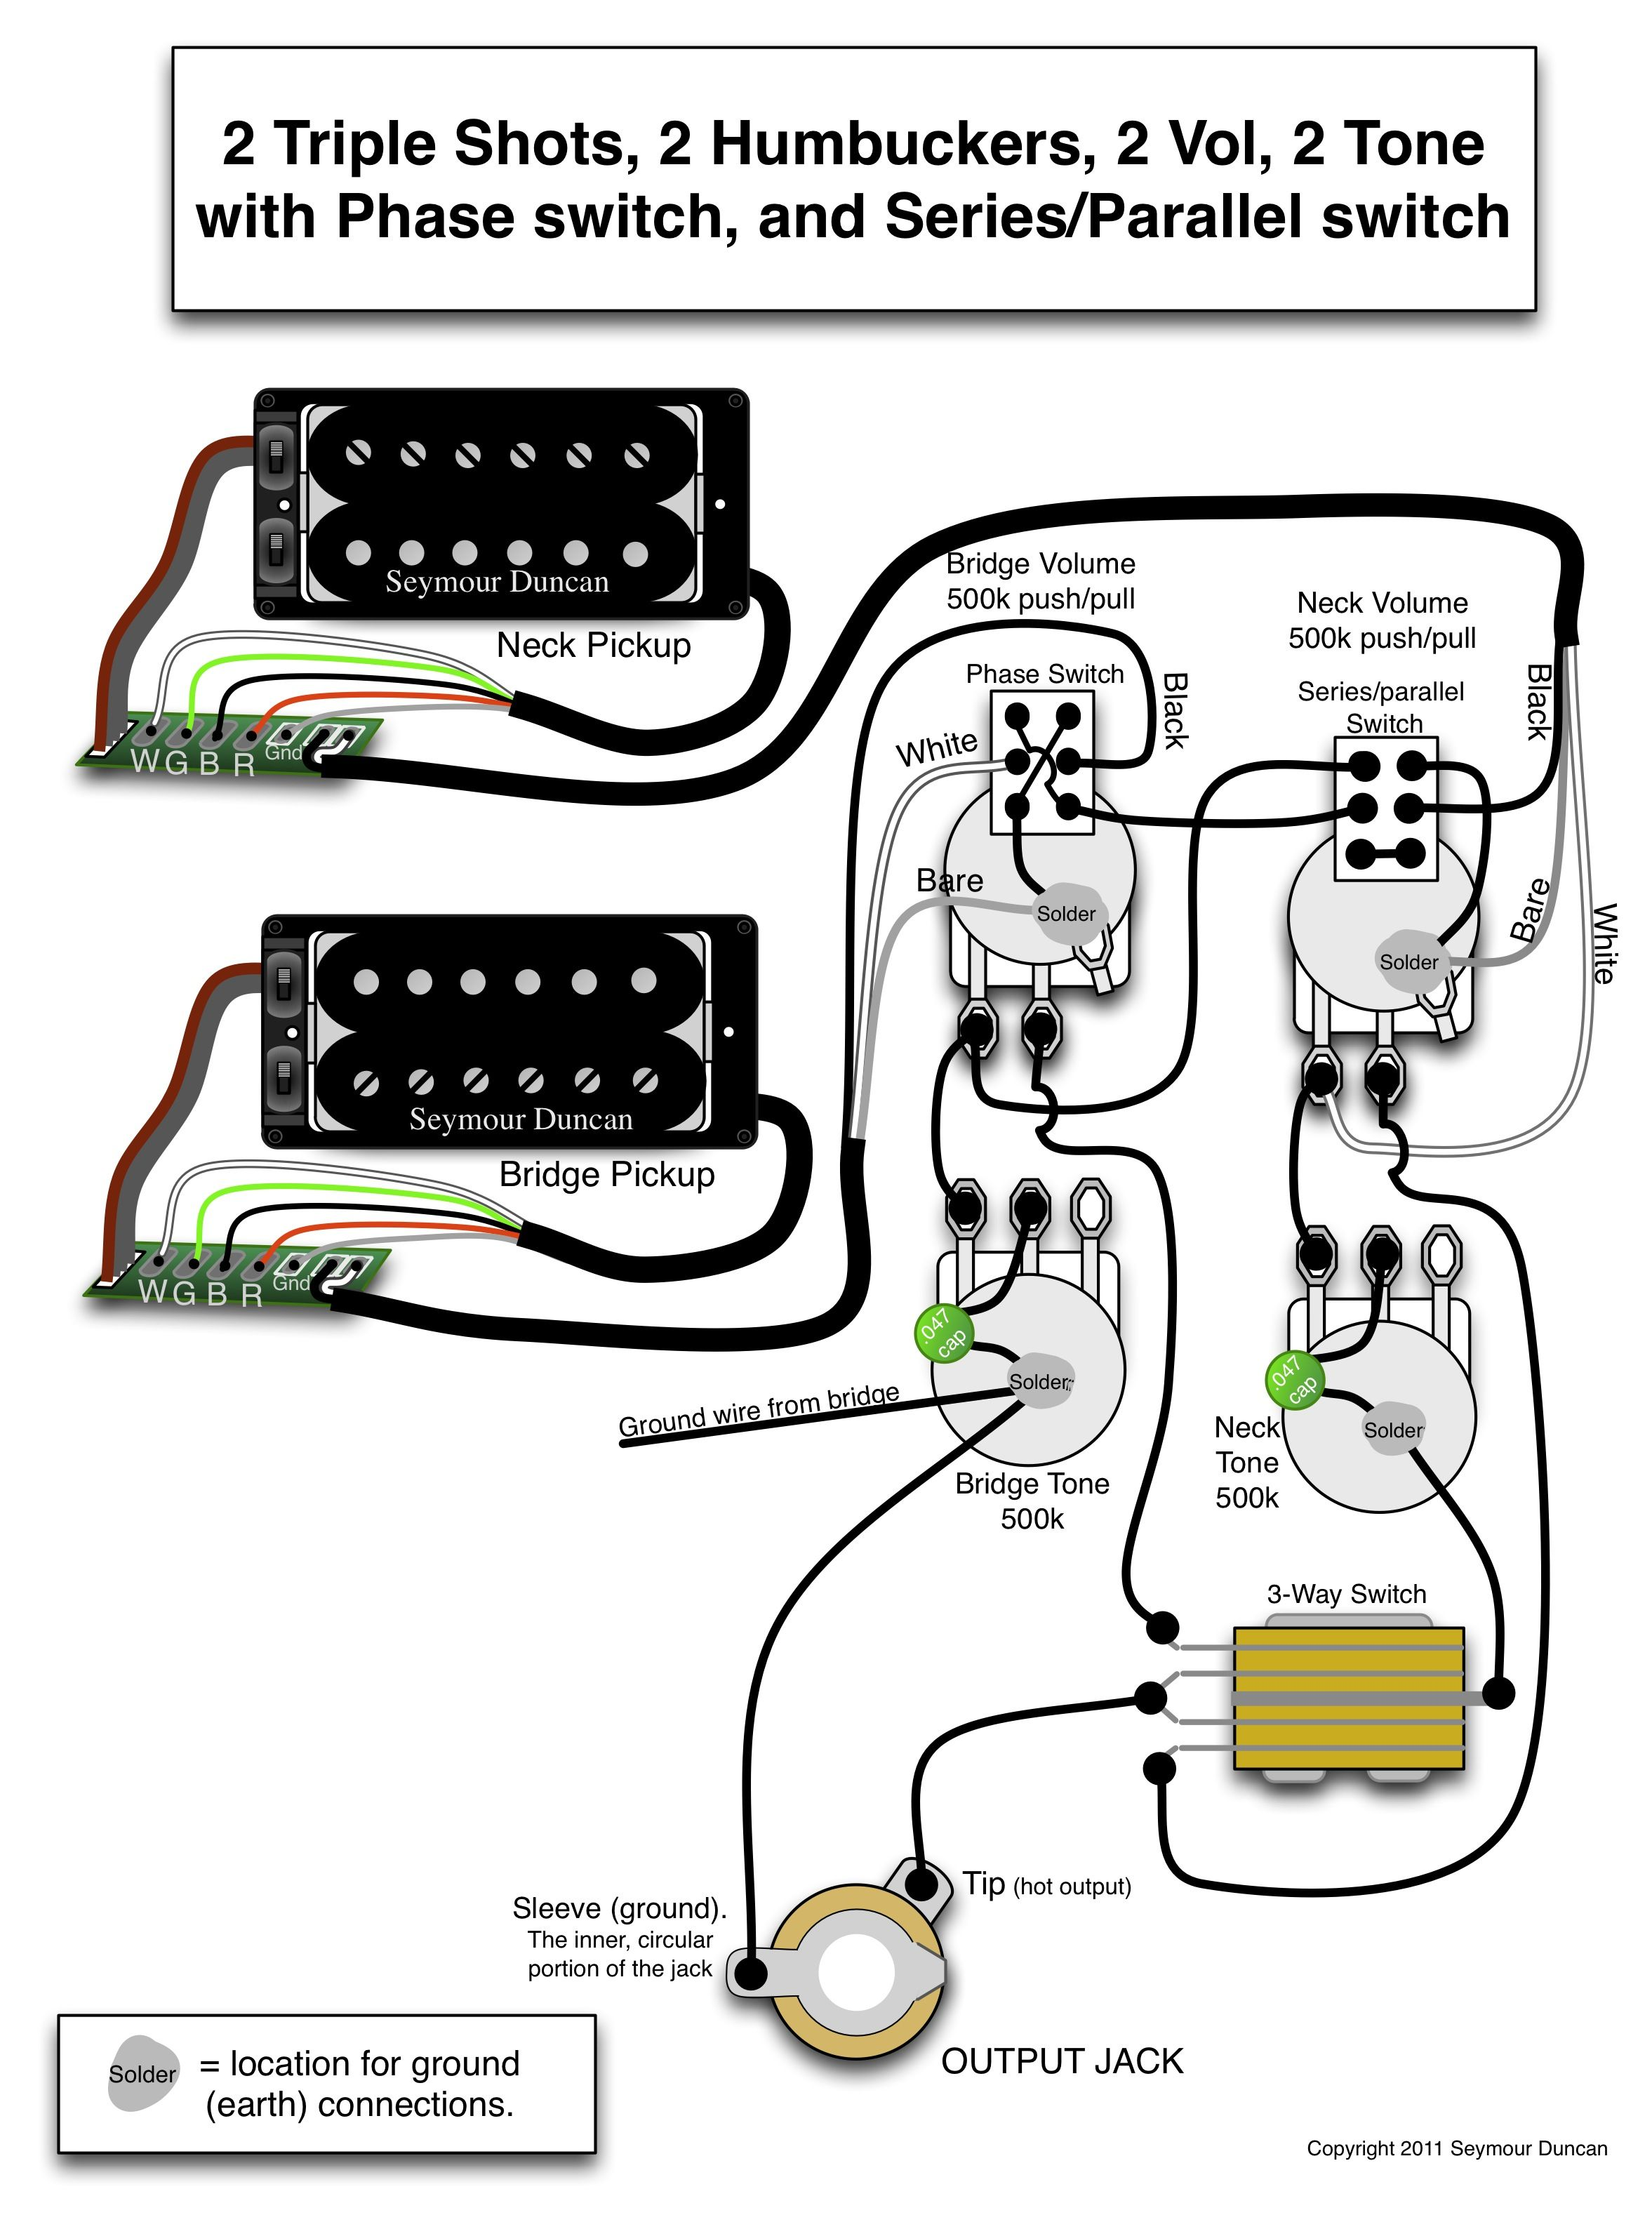 Seymour Duncan wiring diagram 2 Triple Shots, 2